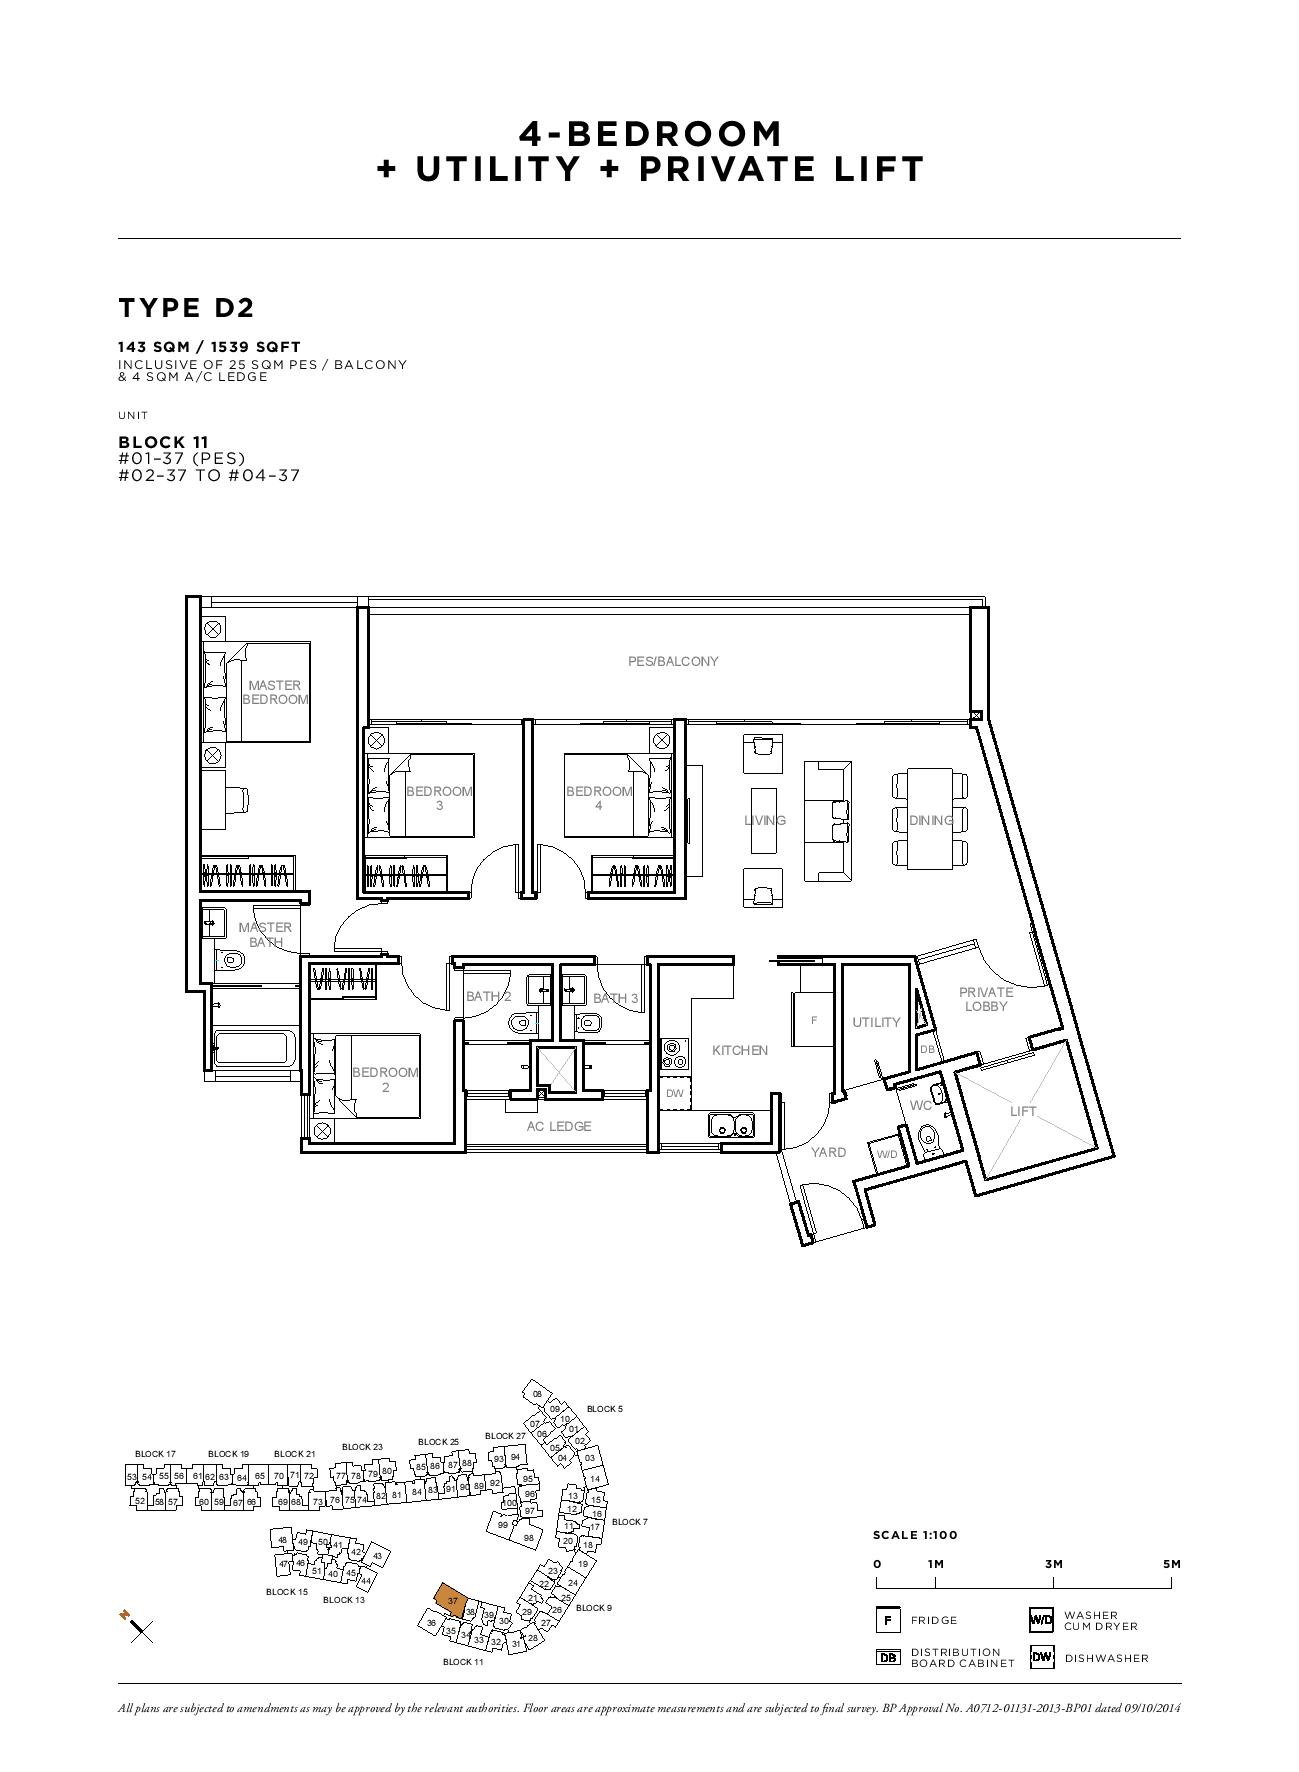 Sophia Hills 4 Bedroom + Utility Private Lift Type D2 Floor Plans